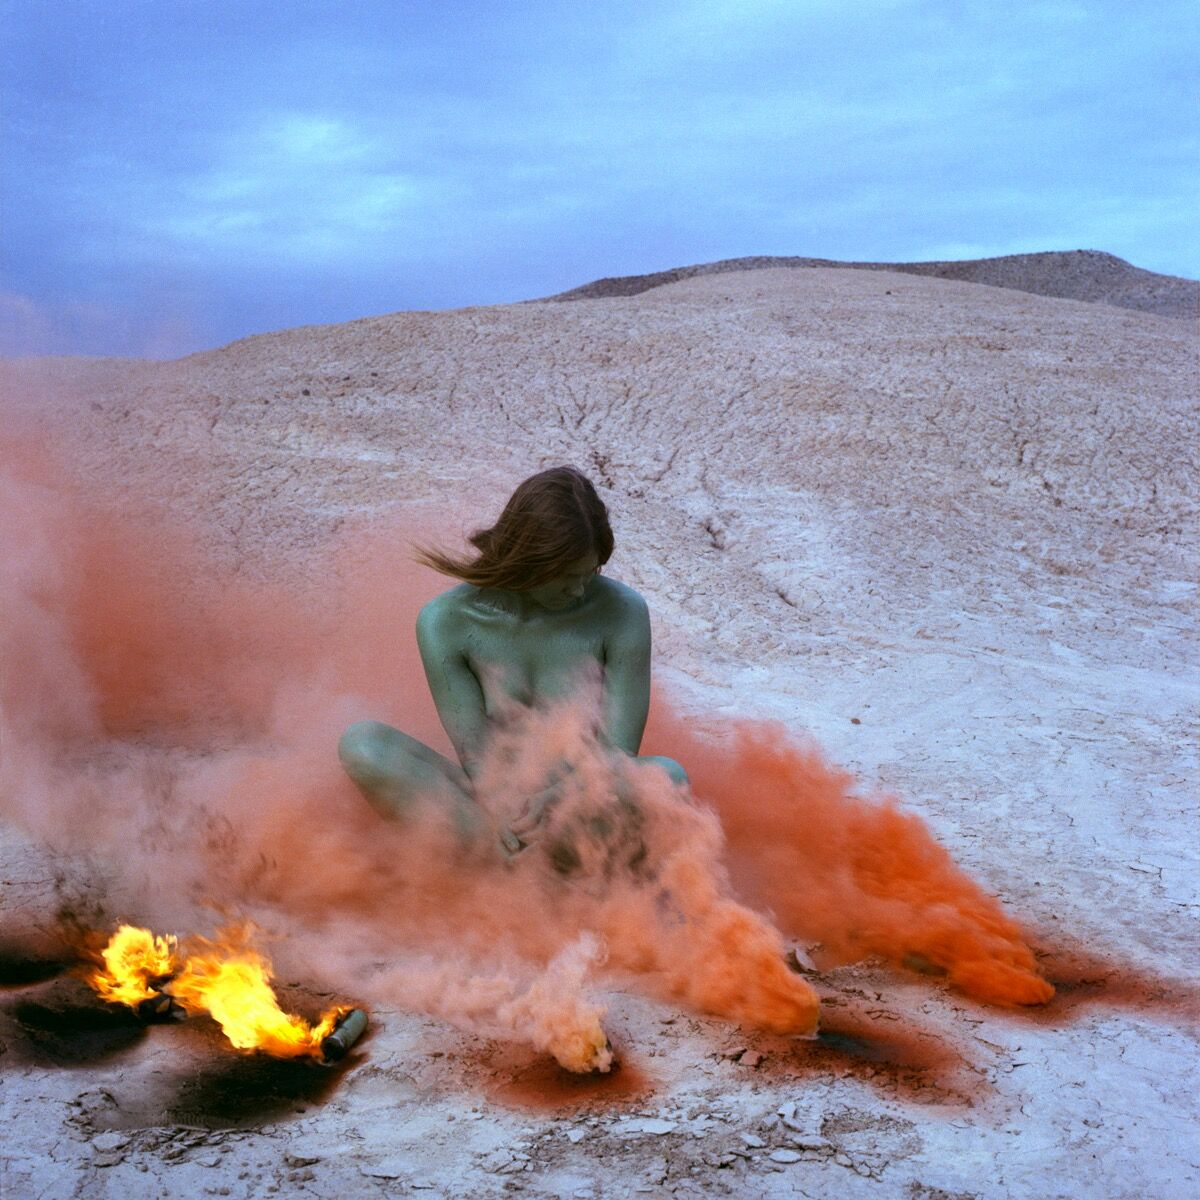 Judy Chicago, Immolation, 1972. Performed by Faith Wilding. © Judy Chicago. Courtesy of Through the Flower Archives.